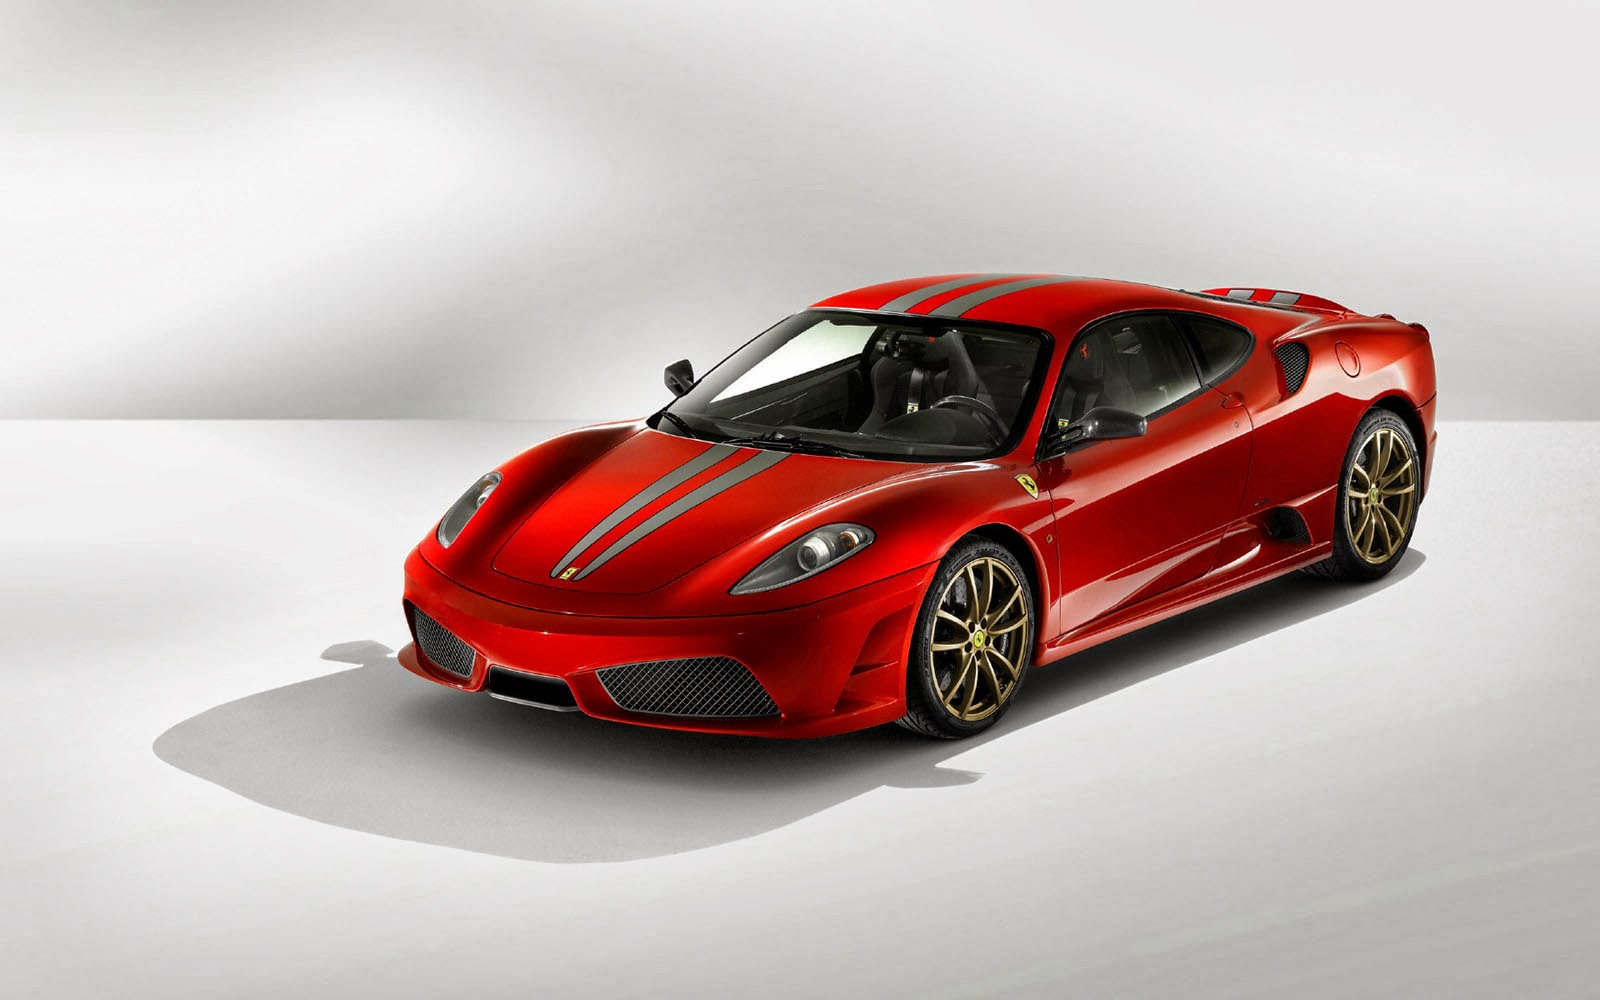 Wallpapers Ferrari F430 Scuderia Wallpapers